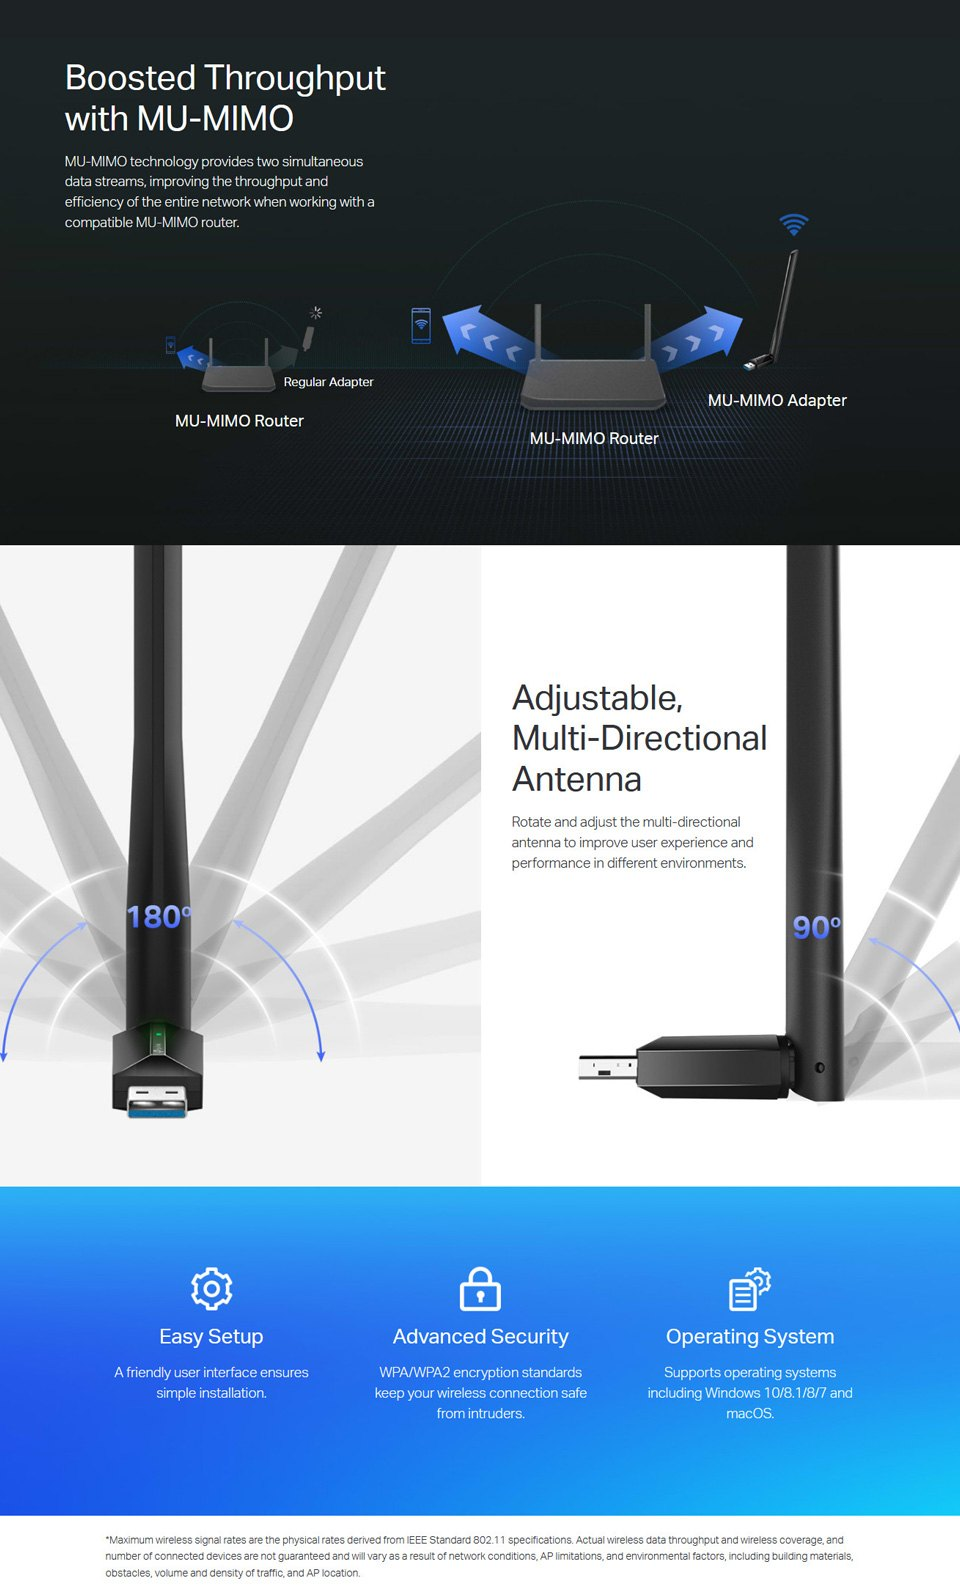 TP-Link Archer T3U Plus Dual Band Wireless AC1300 USB Adapter features 2